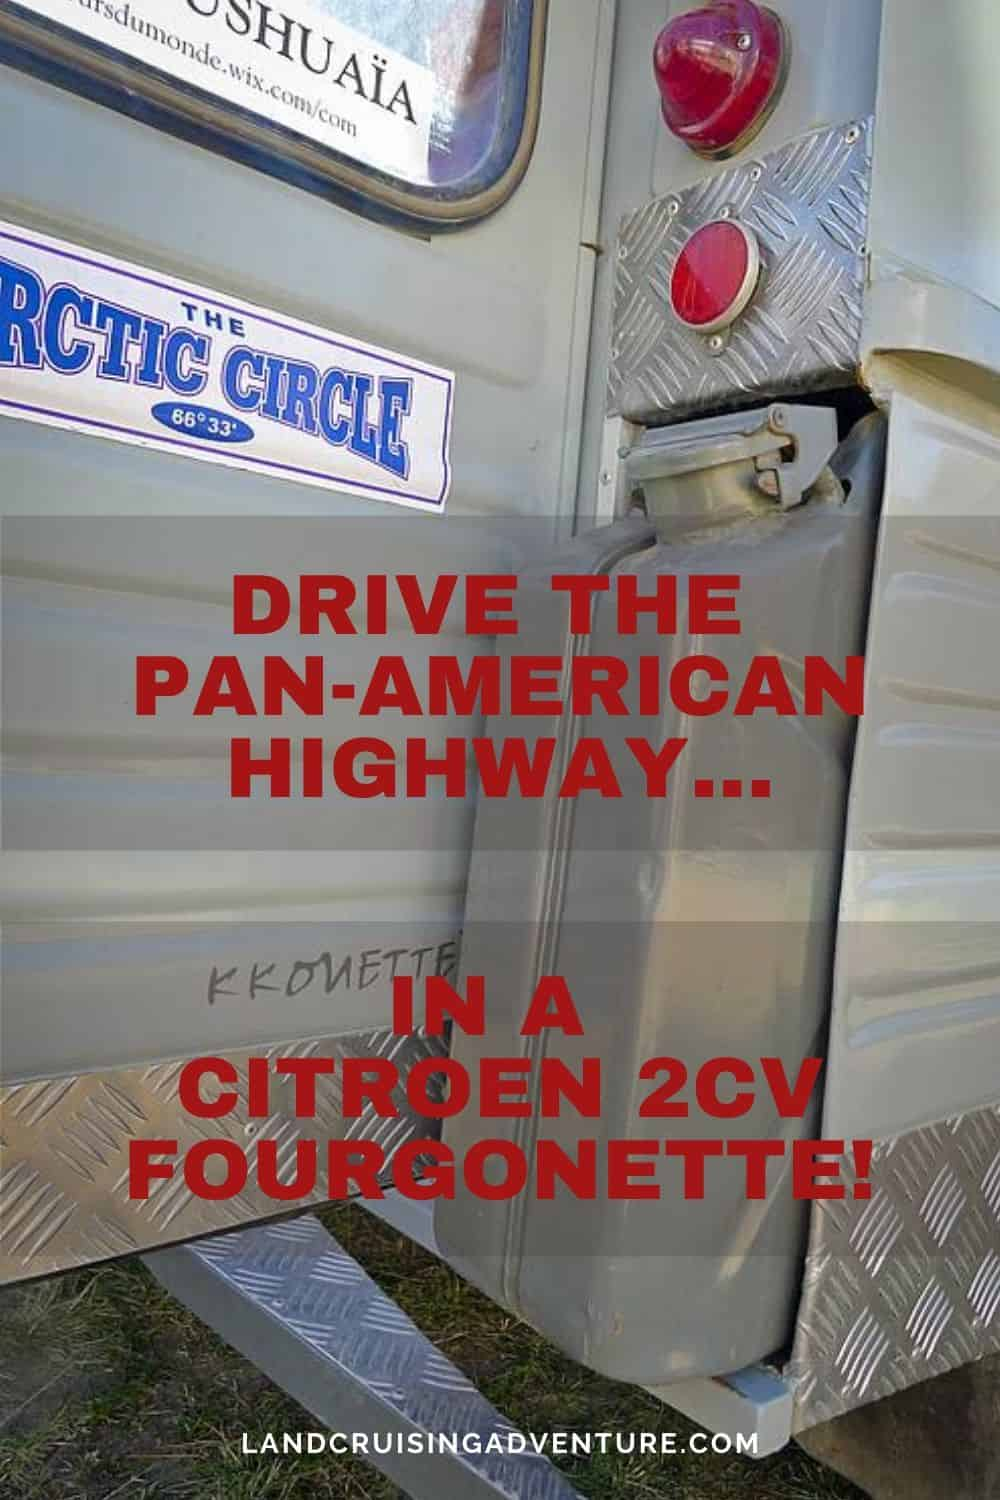 2cV Fourgonette to drive the Pan-American Highway